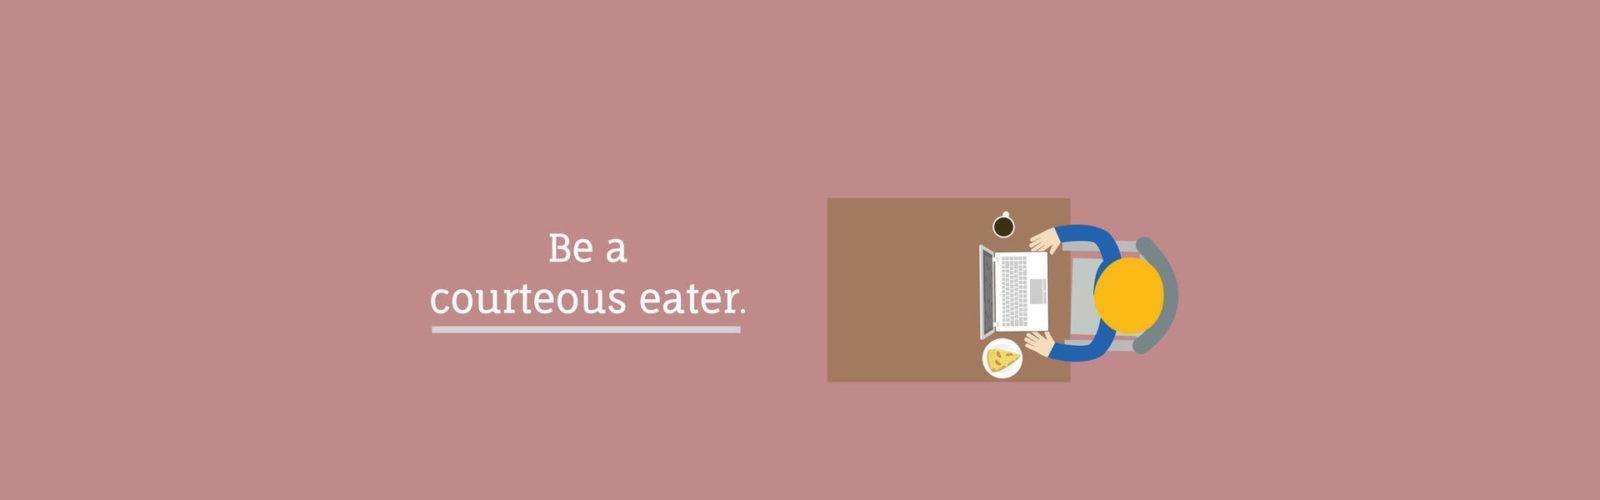 Be a courteous eater.